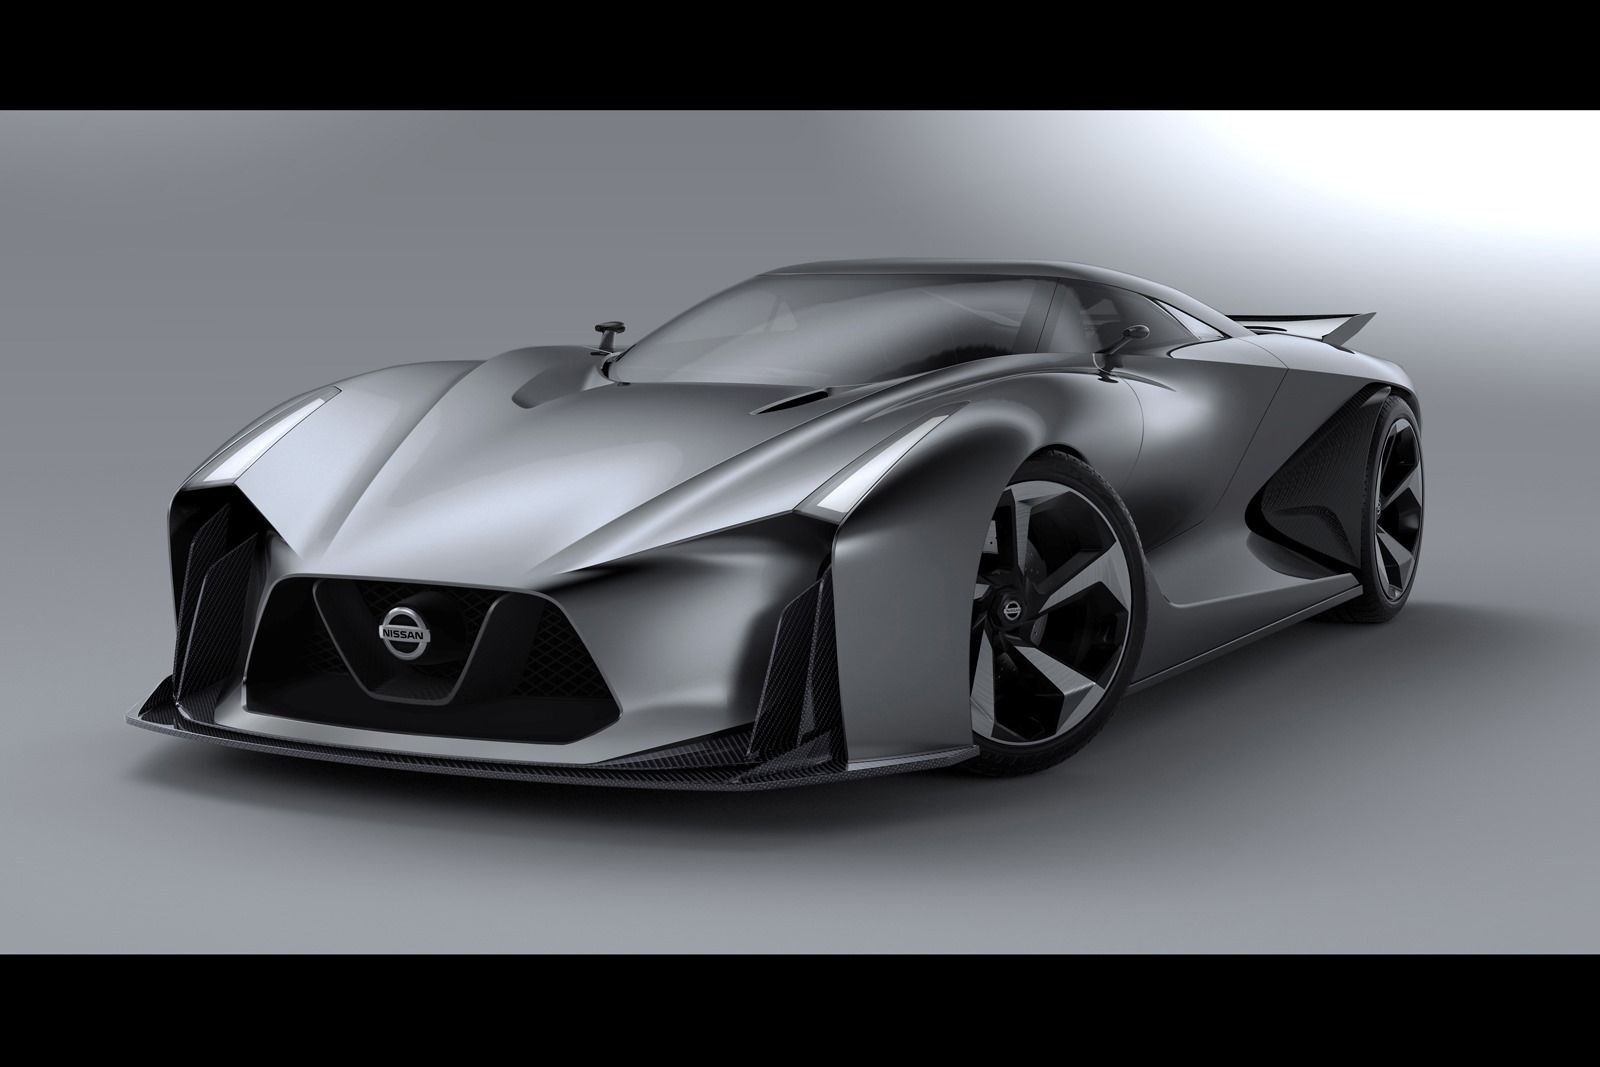 Nissan S Virtual Concept 2020 Supercar Will Become Real At Goodwood Festival Carscoops Gtr Nismo Nissan Gtr Nismo Futuristic Cars